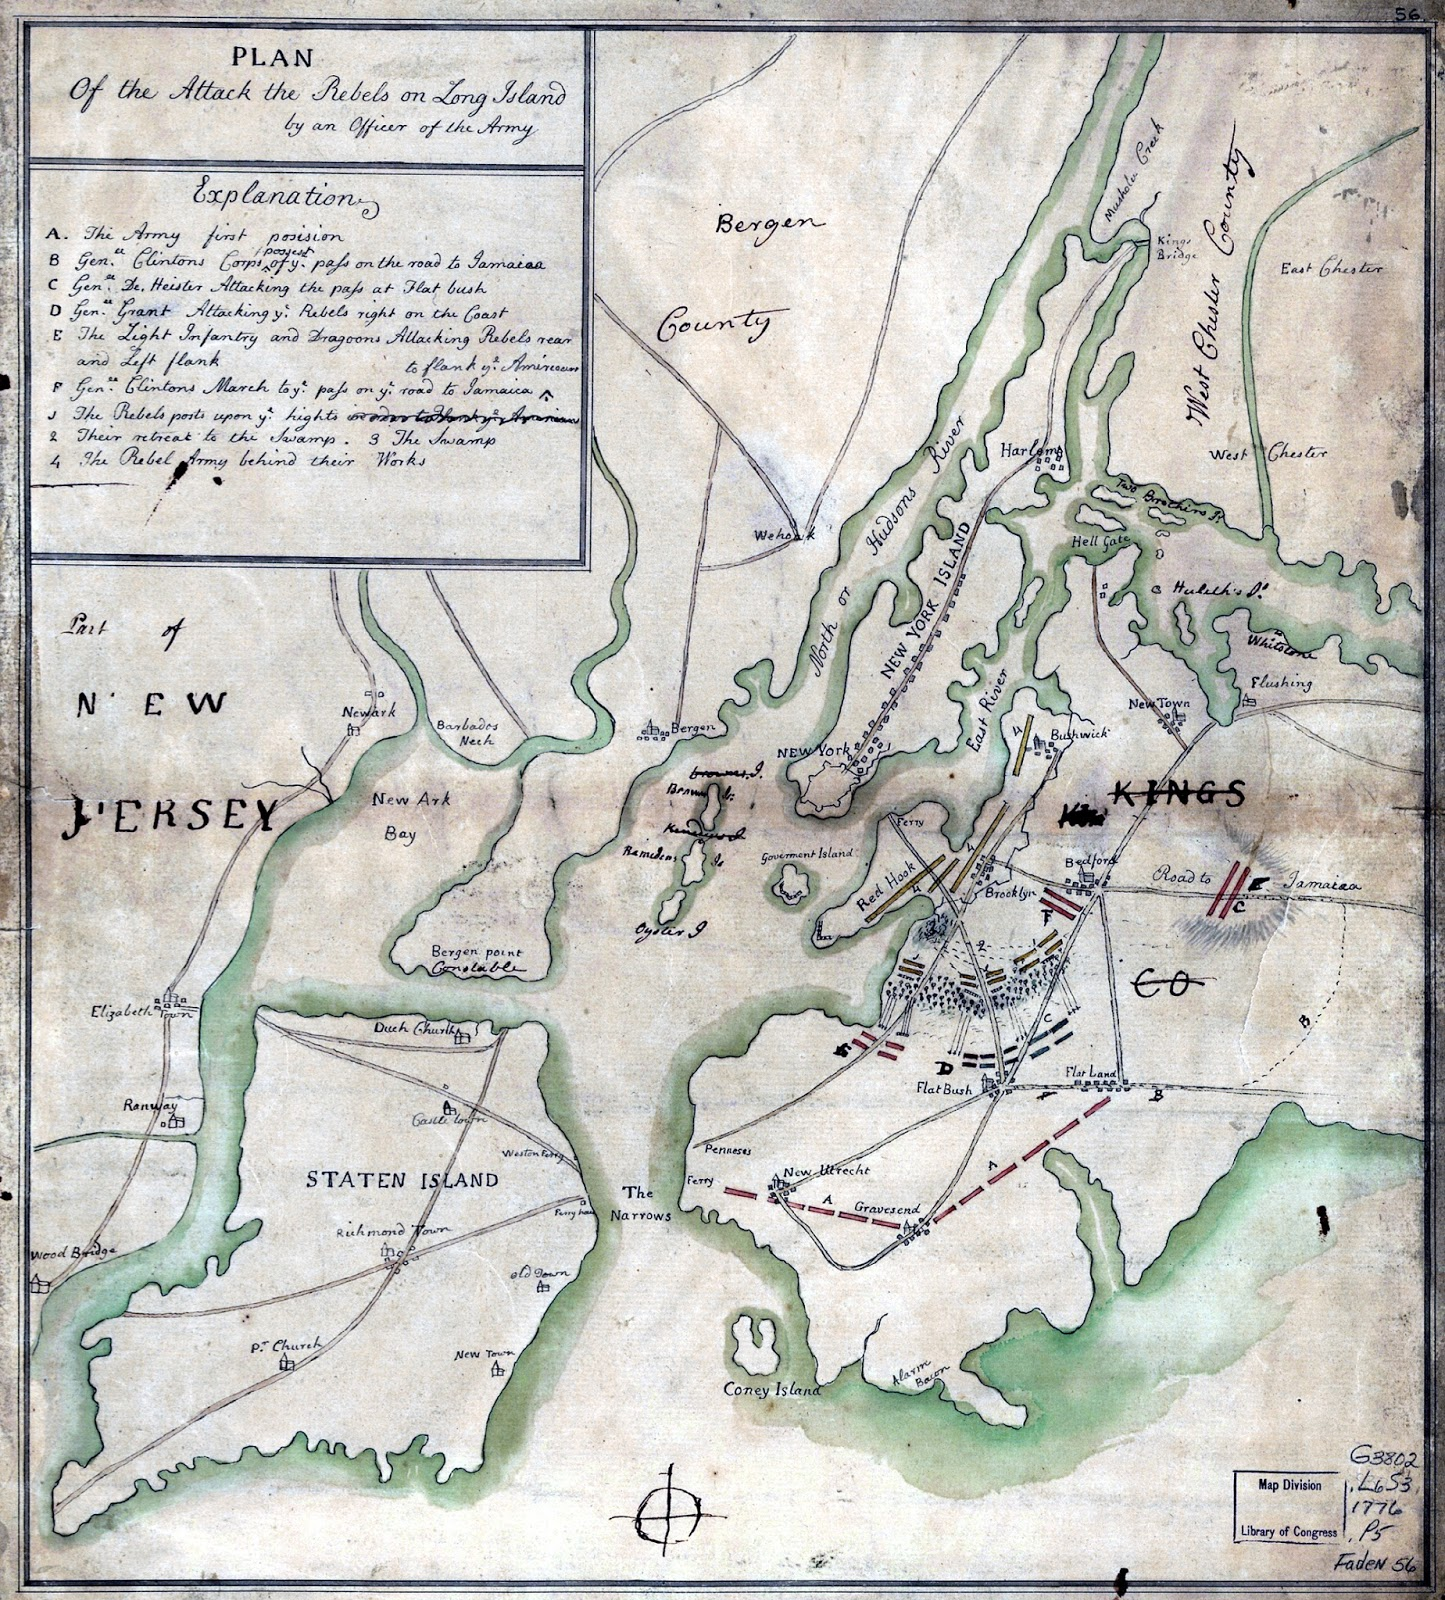 Revolutionary War Map Of New York.The Revolutionary War In Richmond County New York Maps